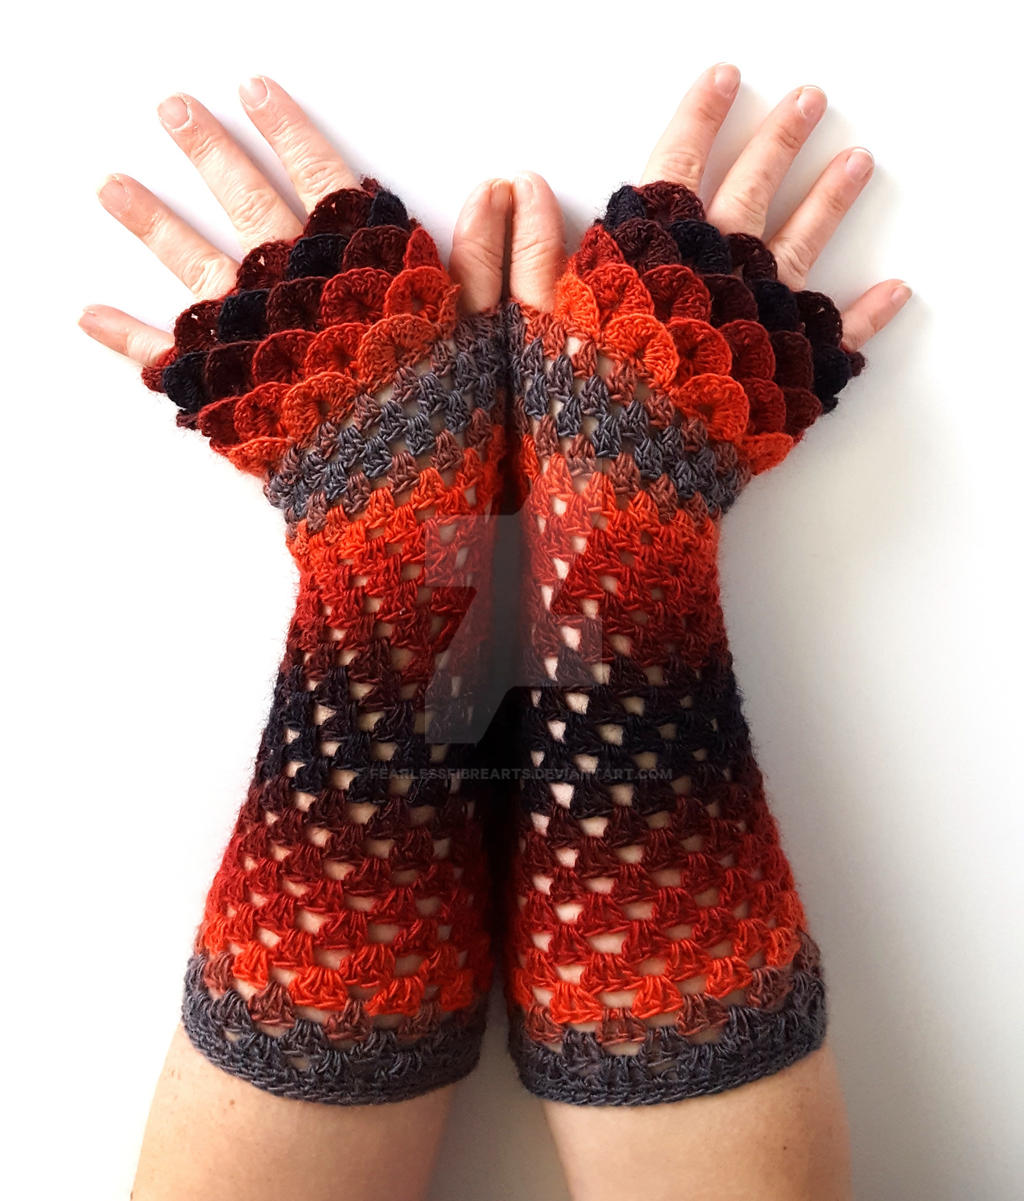 Burning Coals Dragon Gloves Commission by FearlessFibreArts